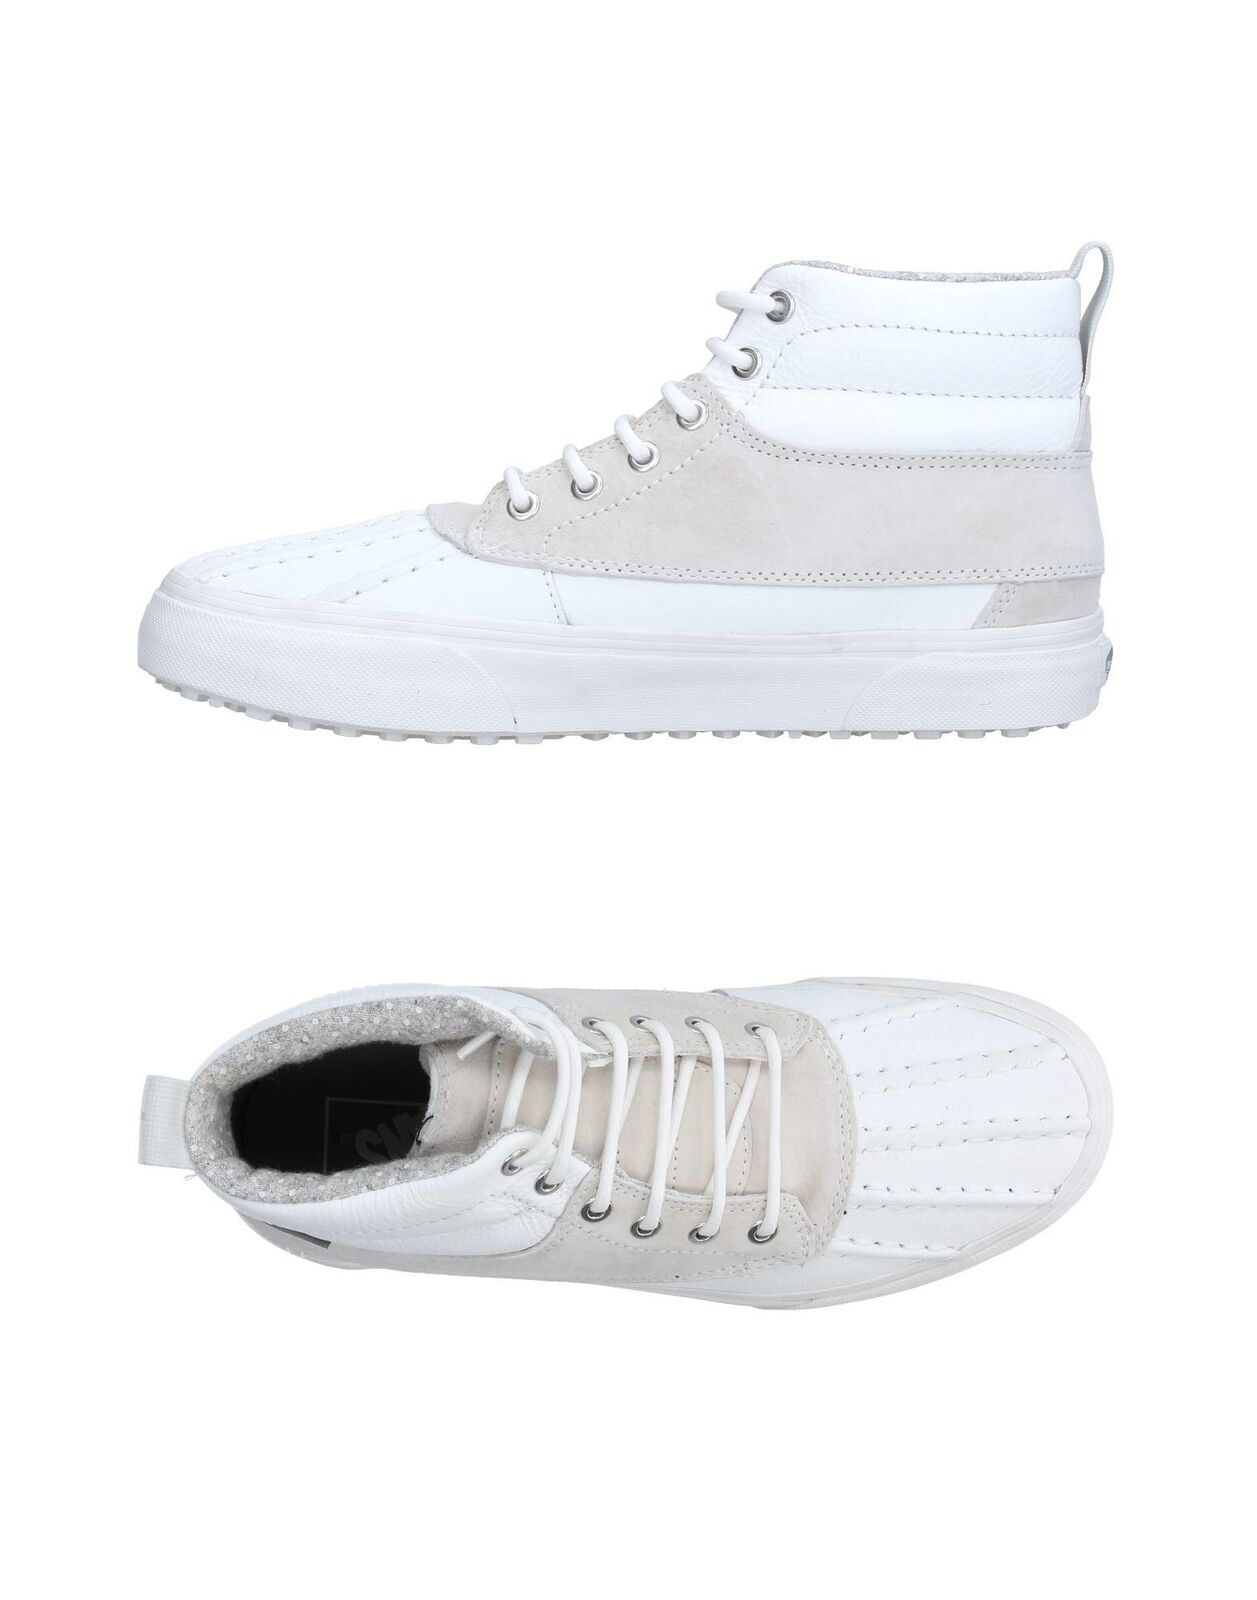 4fa1c664f815 Vans Mens Mens Mens High-Top Leather Sueded Effect Sneakers Trainers White  UK 6.5 US